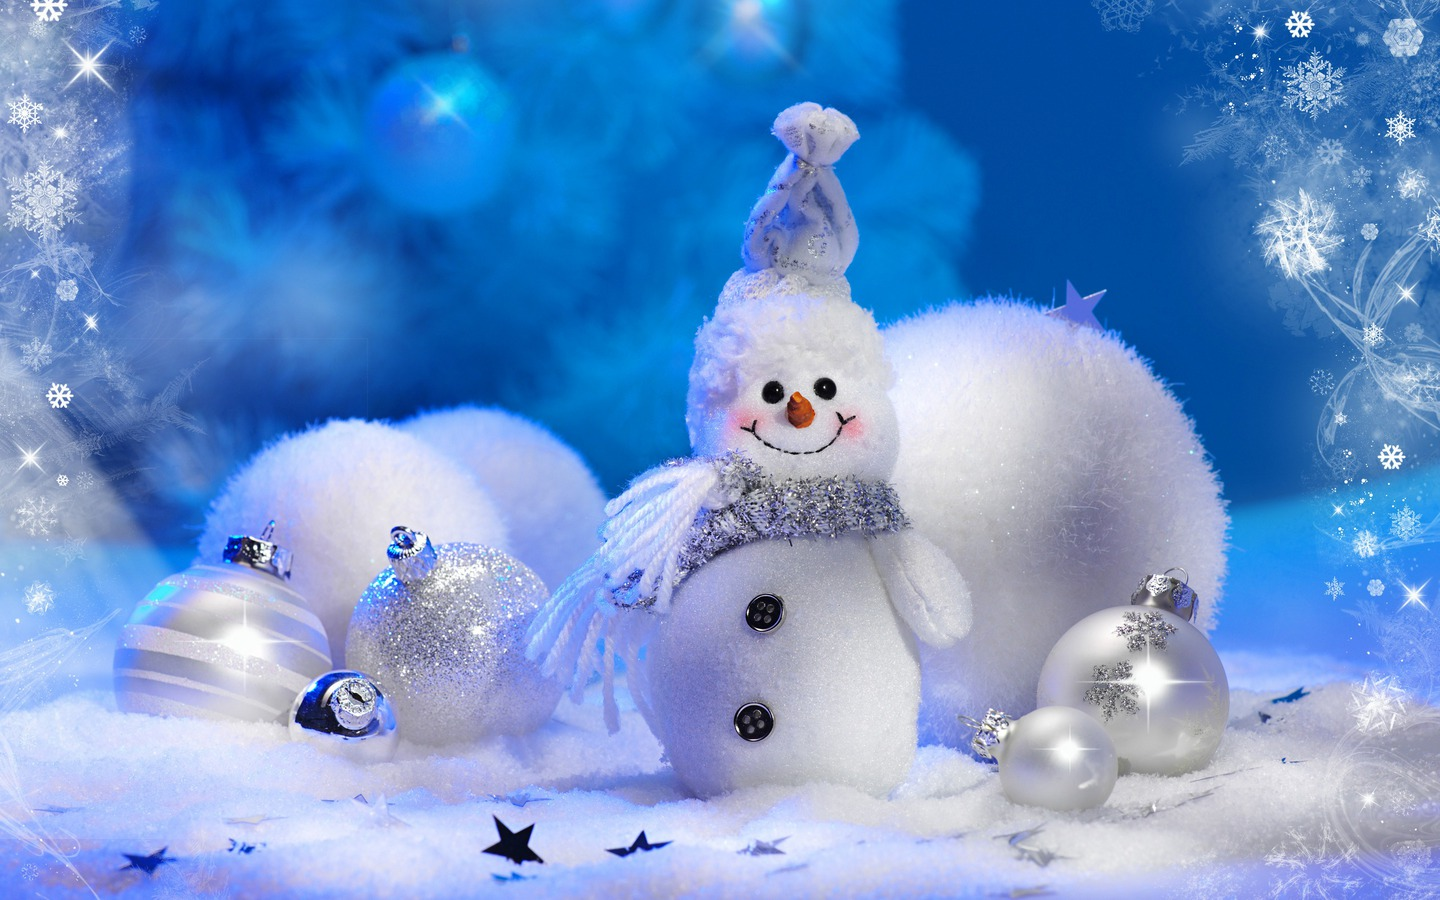 http://1.bp.blogspot.com/-iMNAR3a0m-0/UNEaDUJ0jrI/AAAAAAAABYo/ru1HXCoJki8/s1600/Best-top-desktop-christmas-wallpapers-hd-christmas-wallpaper-picture-image-photo-37.jpg